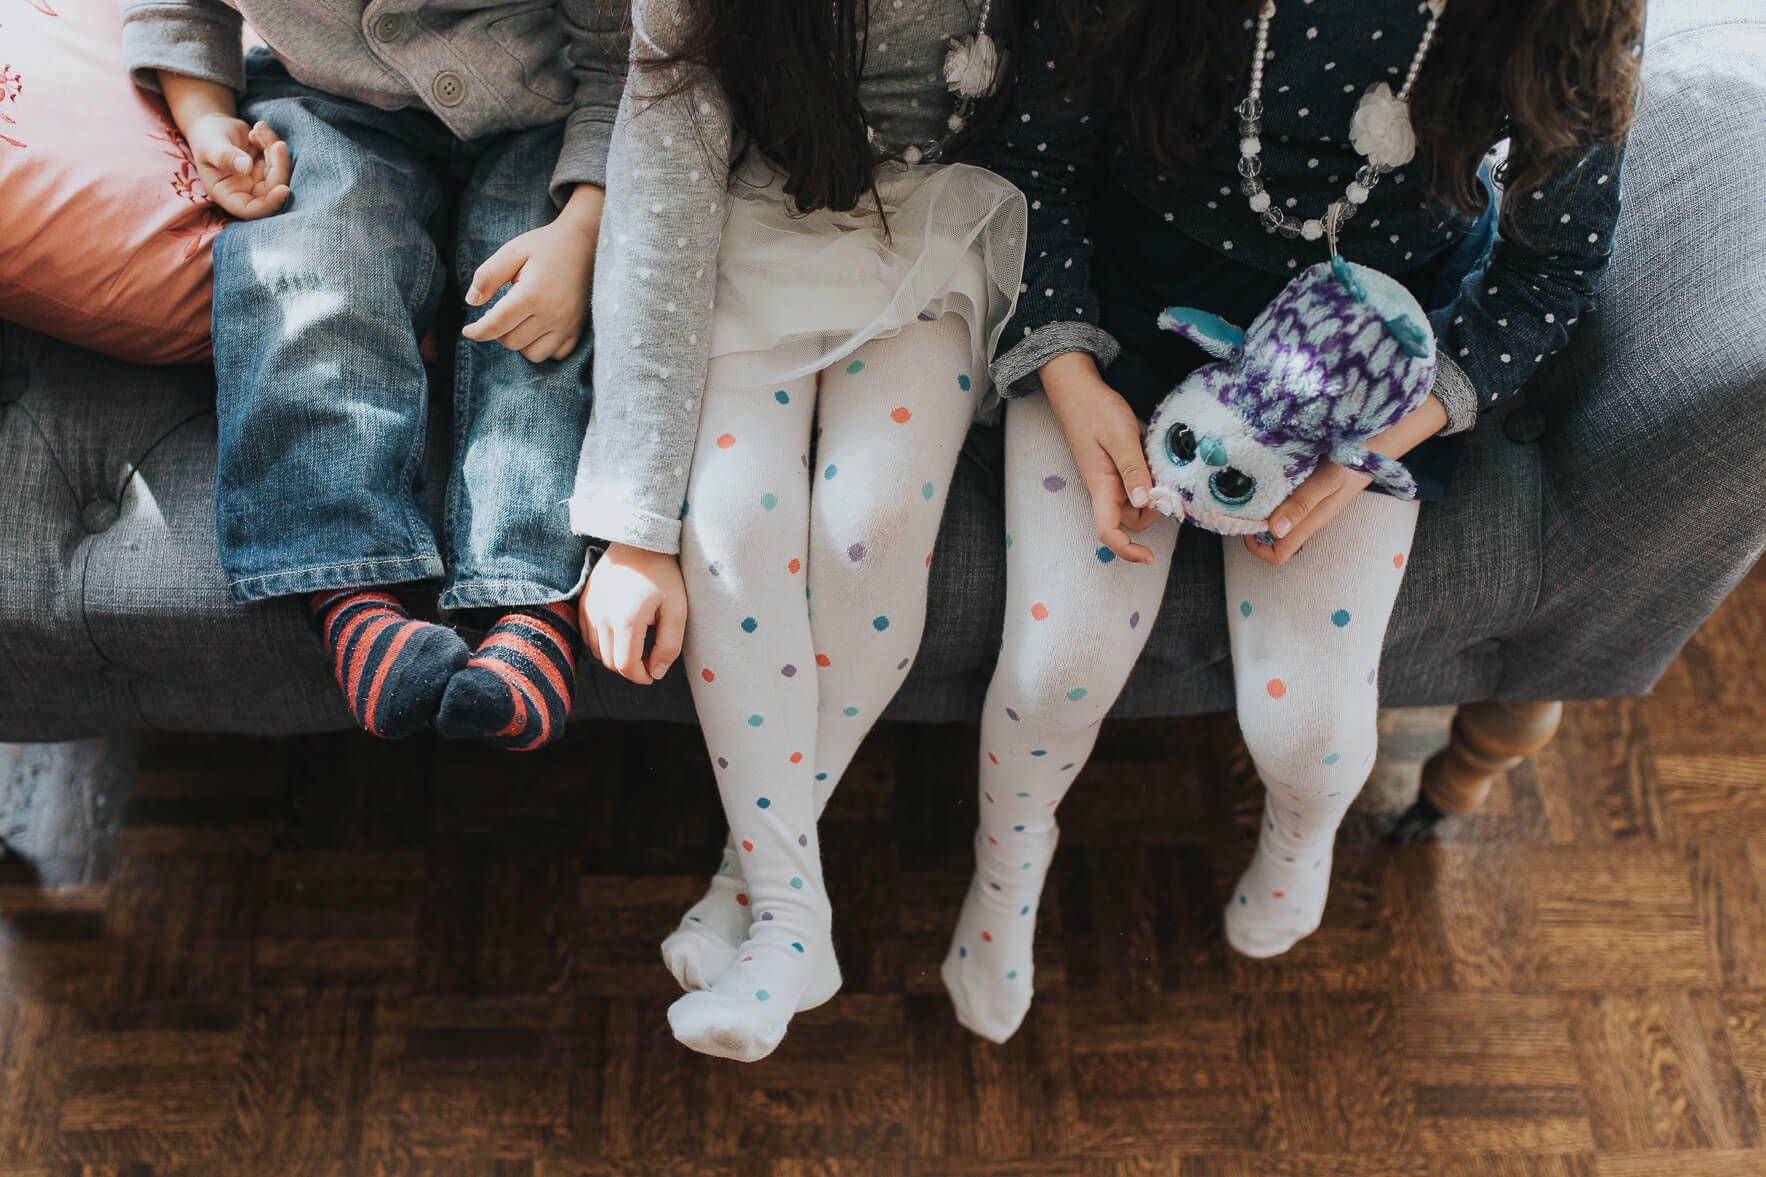 Top down shot of three kids with their socks on